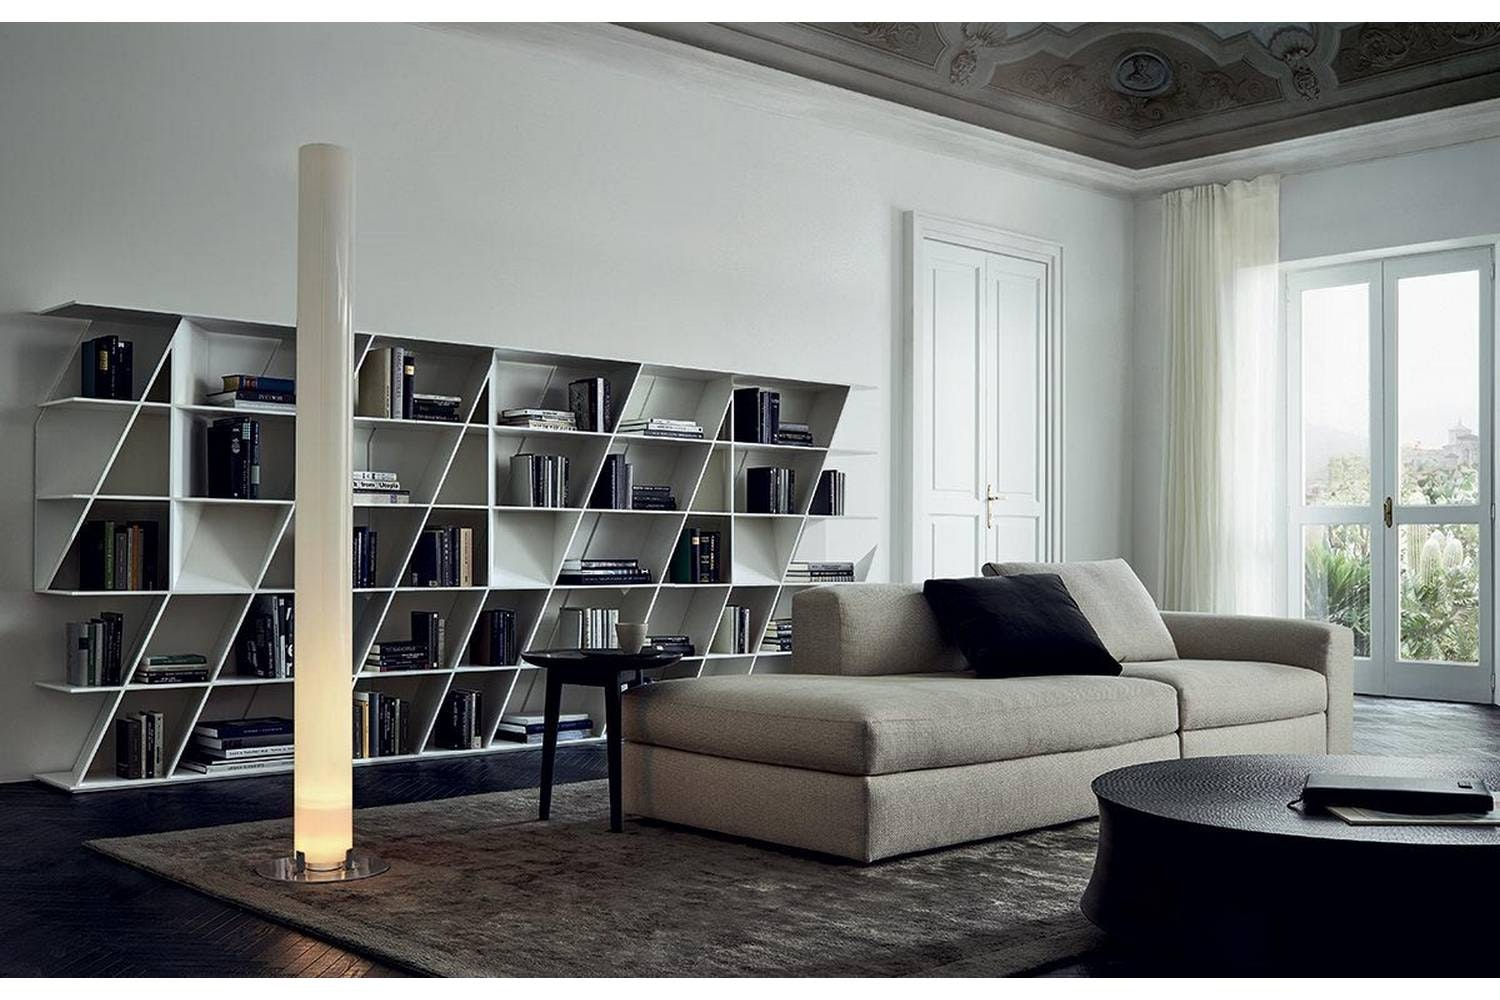 Bedside Bookshelf Web Bookshelf By Daniel Libeskind For Poliform Poliform